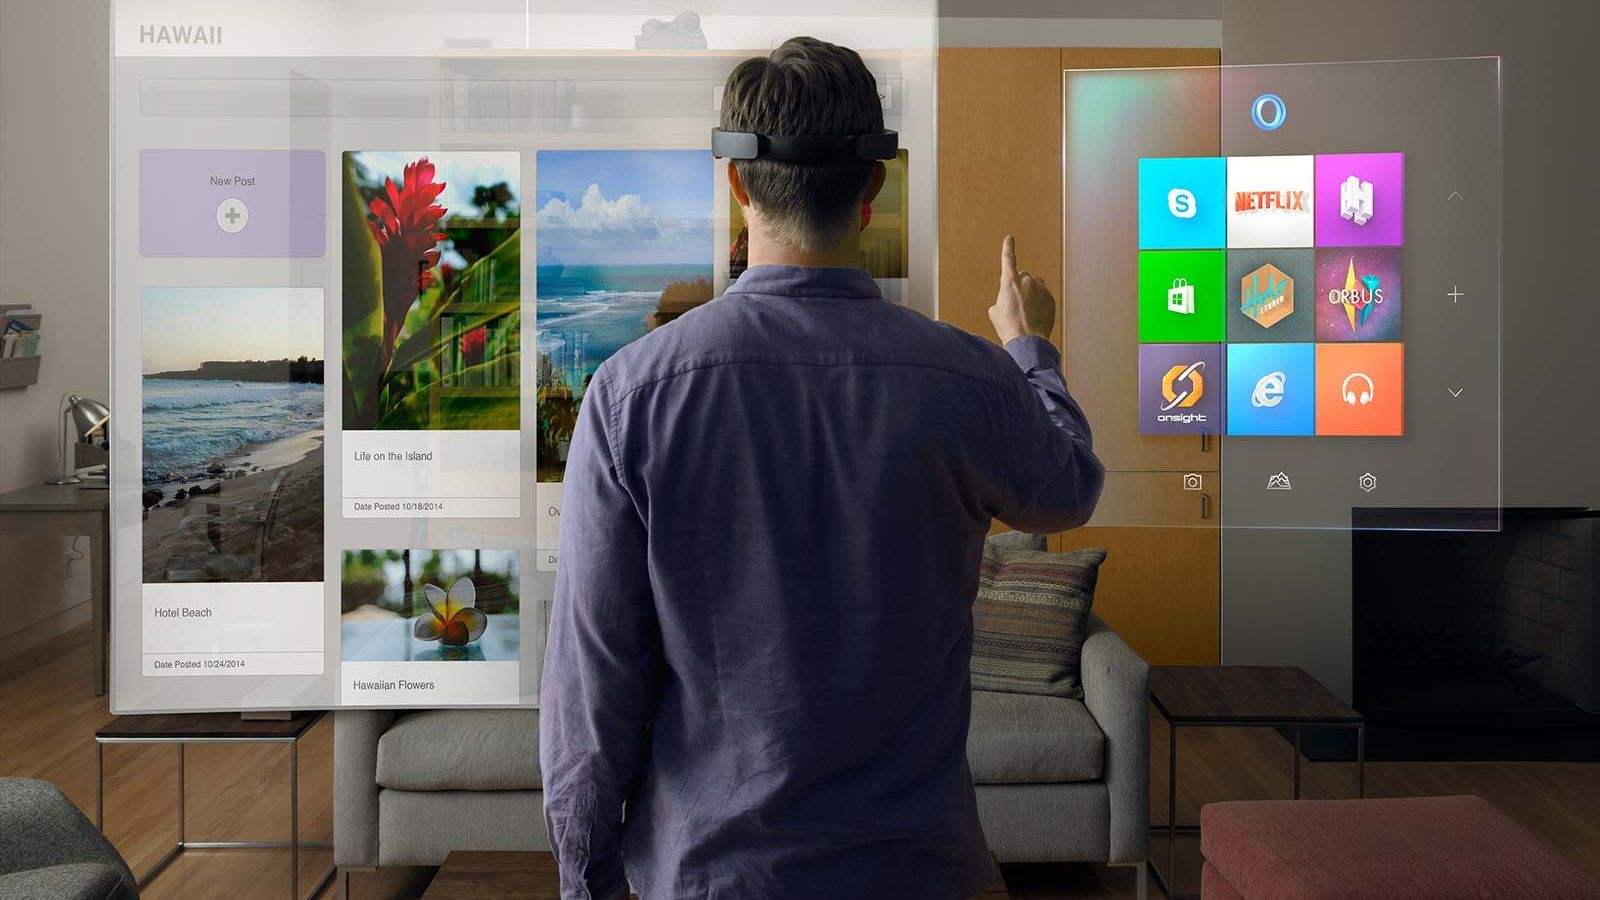 Since Microsoft announced HoloLens, I've been fantasizing about how it could inspire new business, improve old businesses, and generally make our lives better. Because I have neither the means nor...